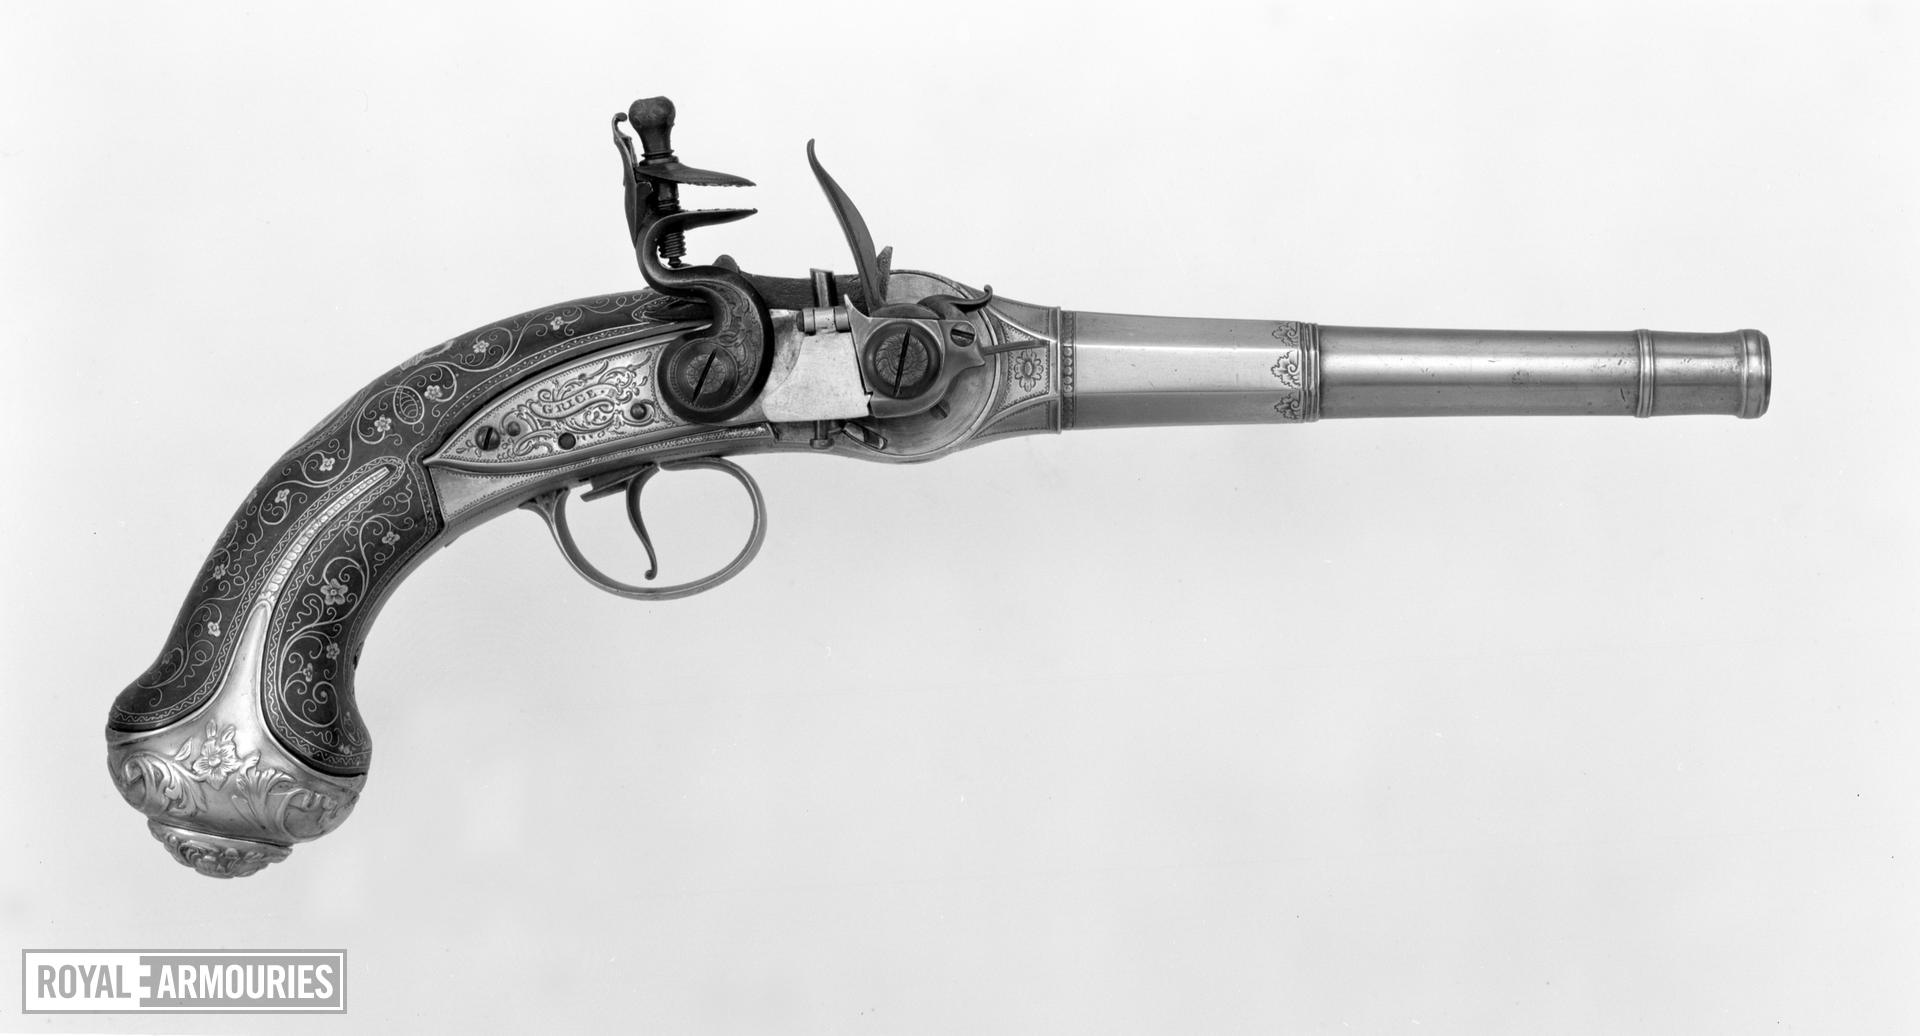 Flintlock breech-loading magazine pistol - Lorenzoni System